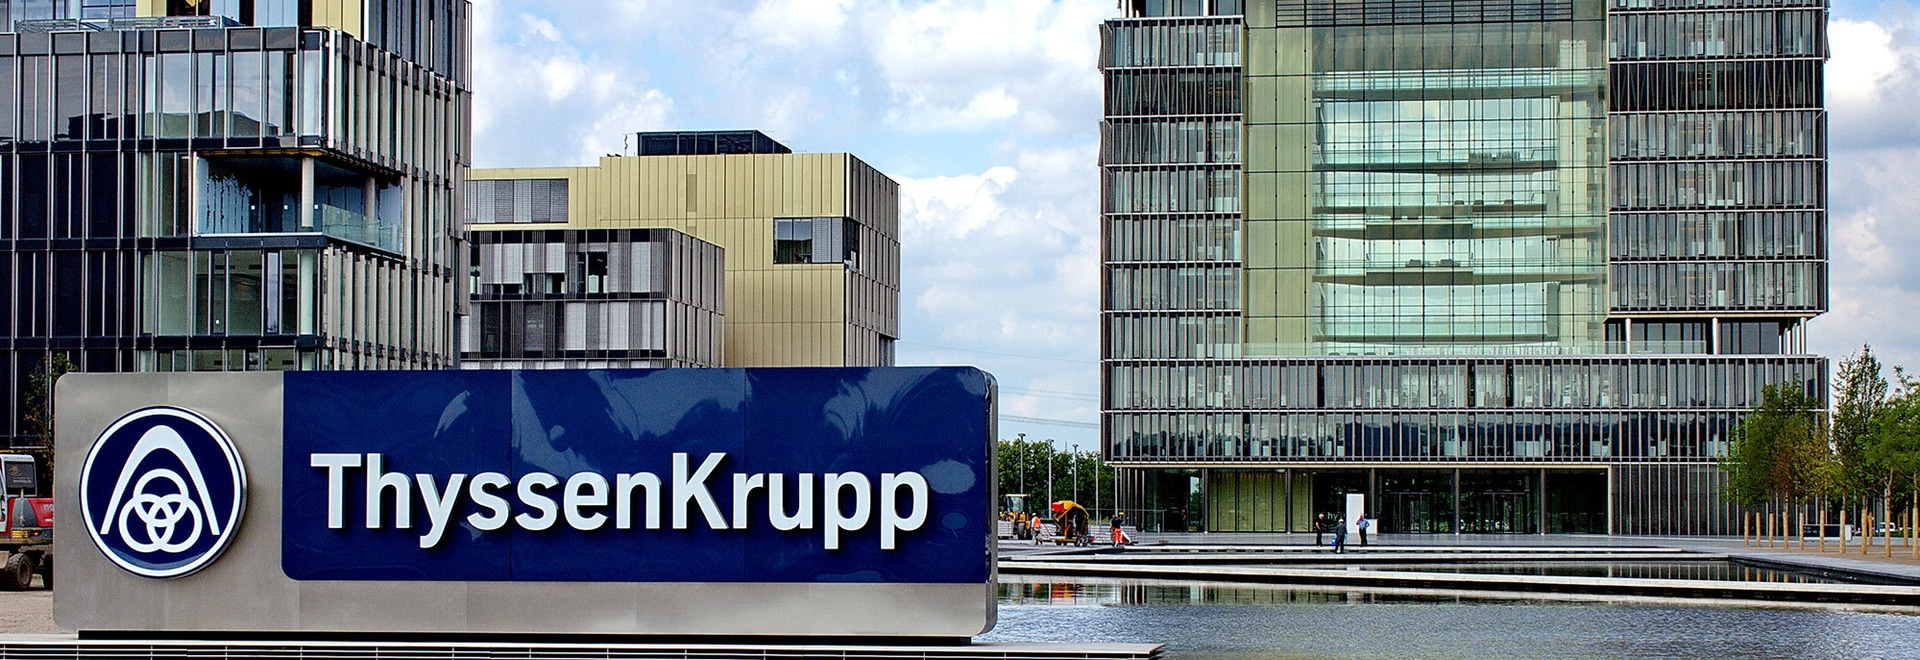 ThyssenKrupp AG, Essen, Germania